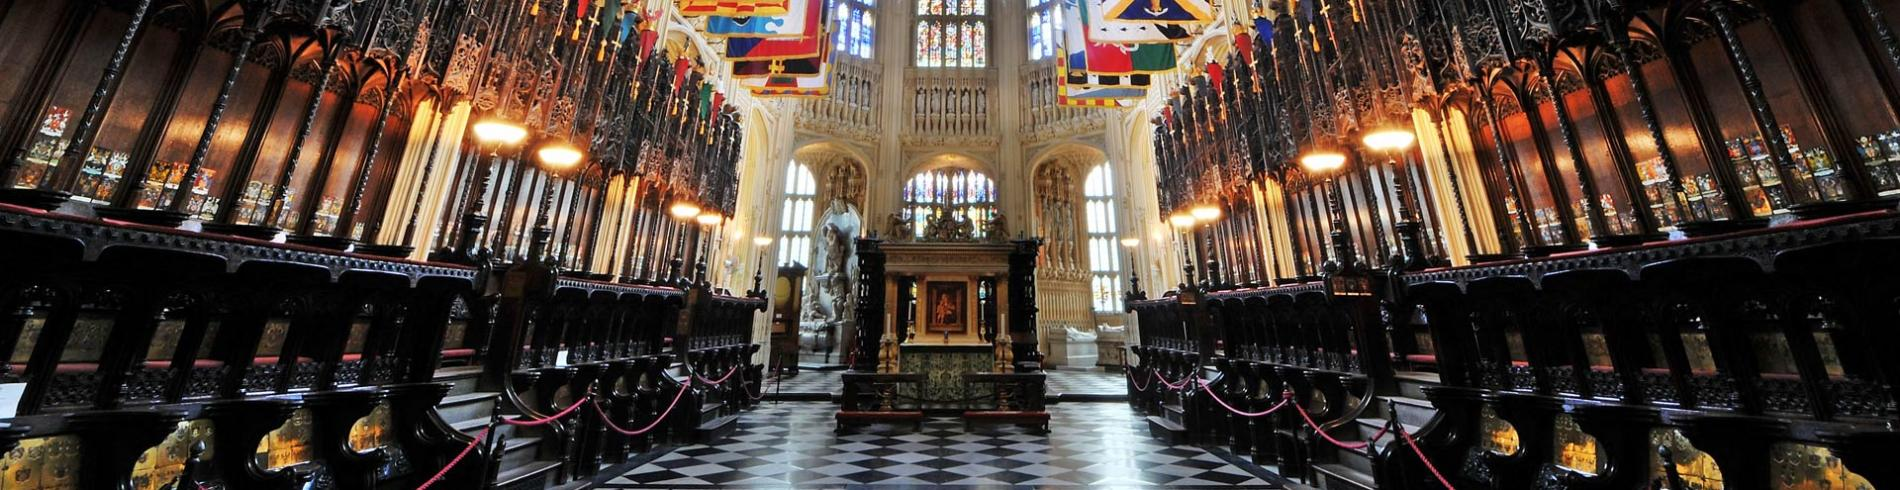 The Lady Chapel in Westminster Abbey